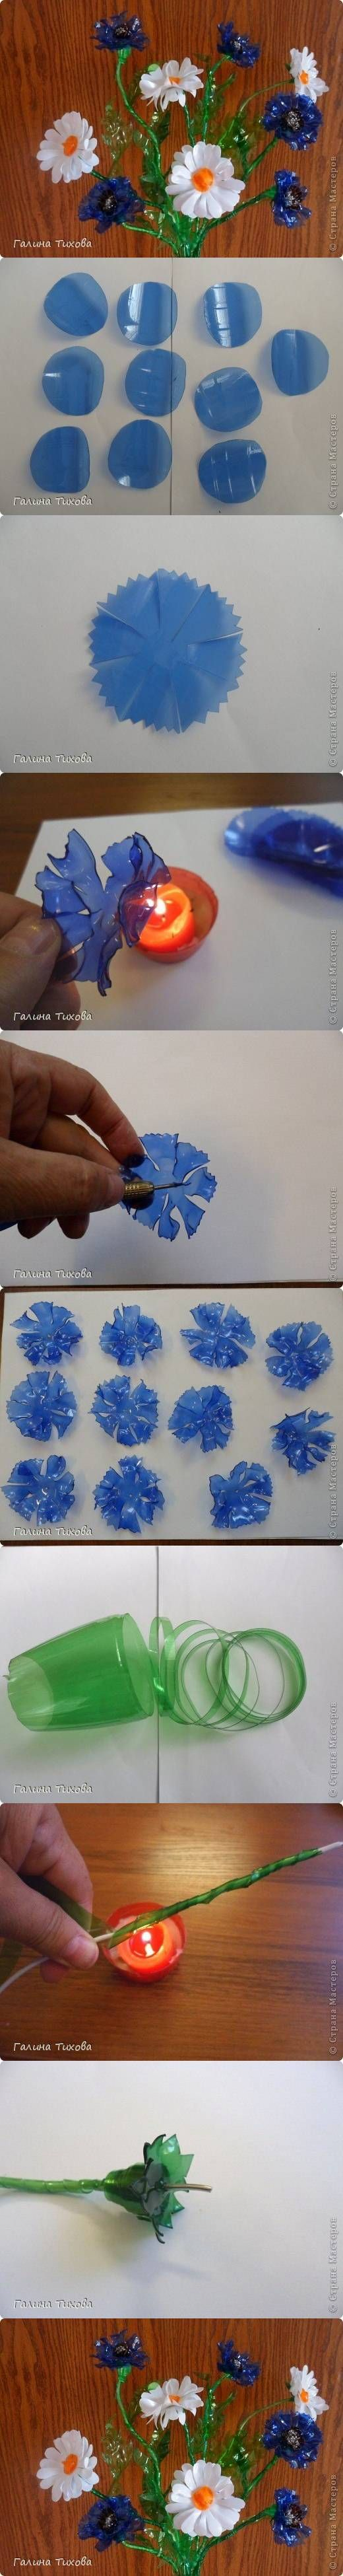 DIY Plastic Bottle Cornflowers and Daisies